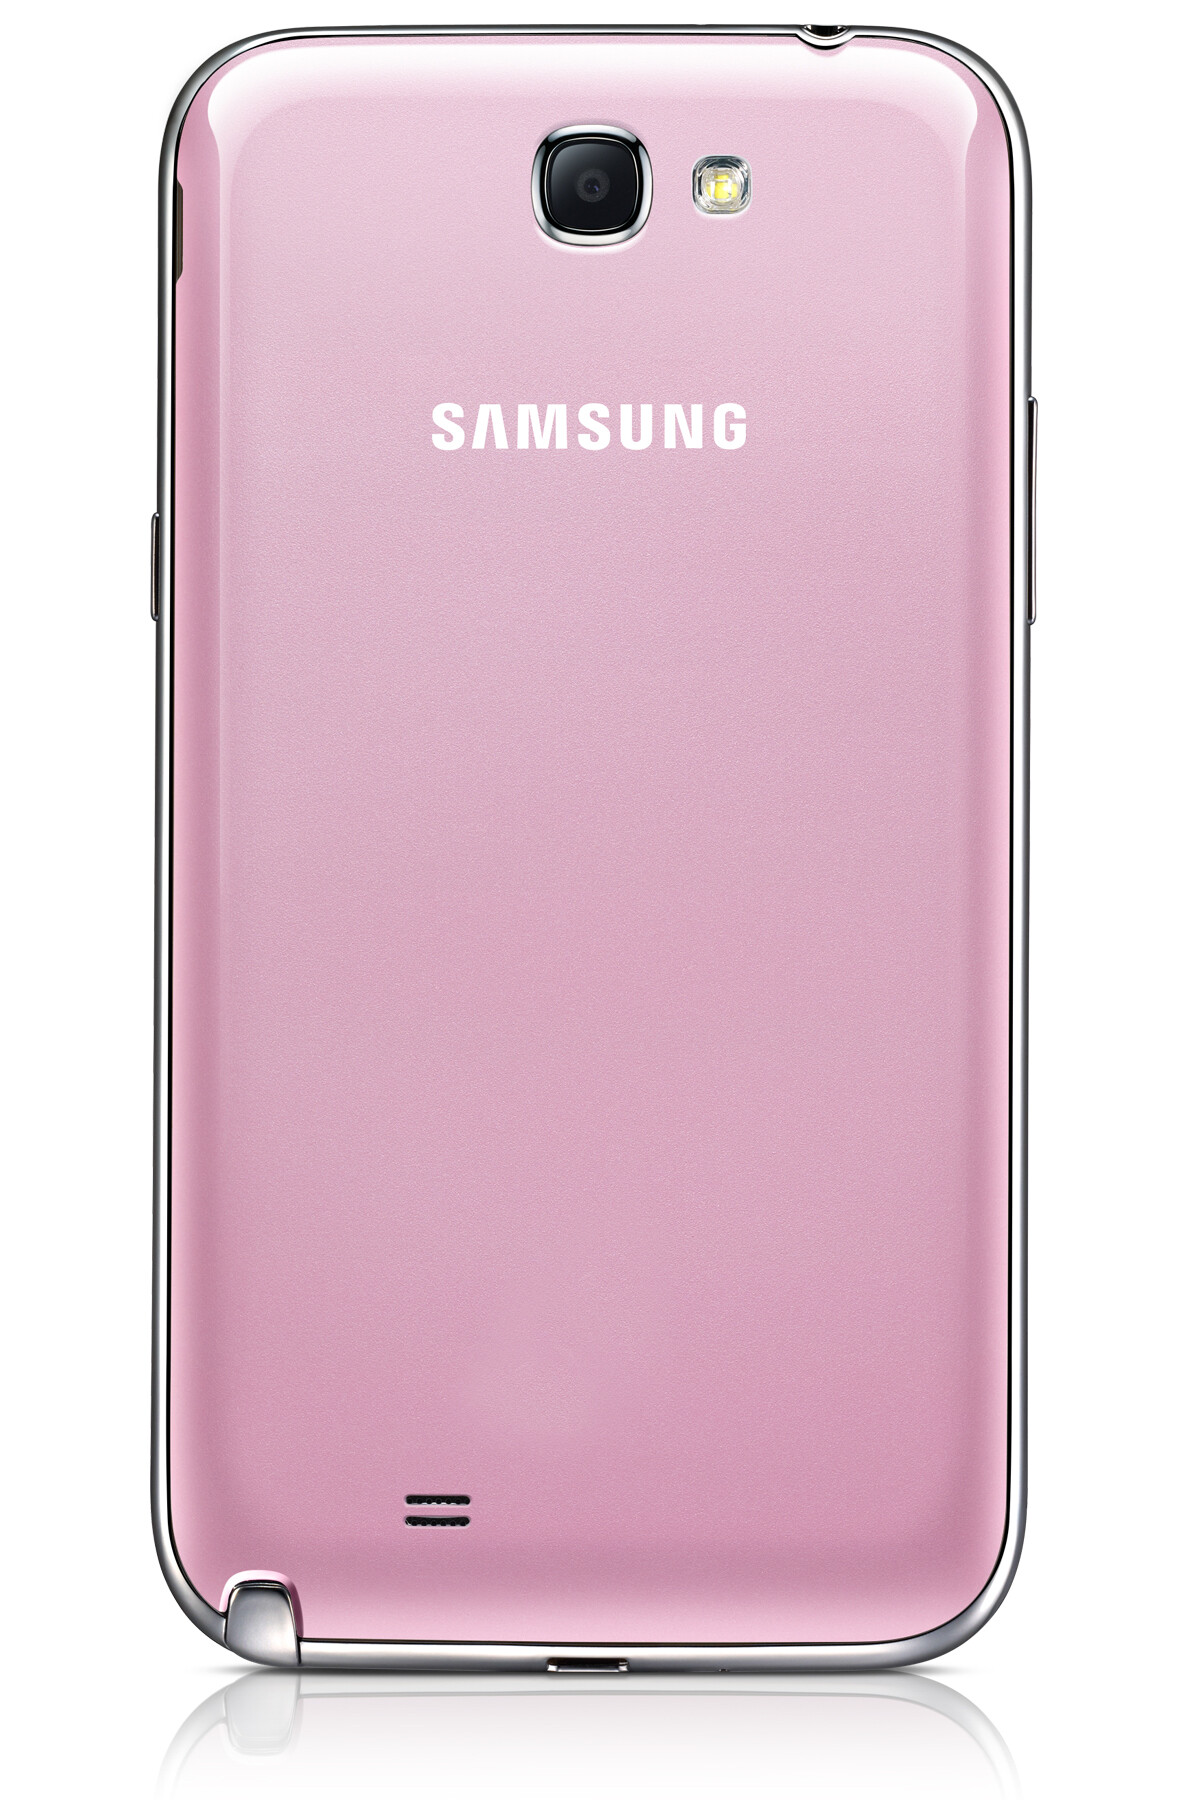 pink samsung galaxy note ii now official ladies approve. Black Bedroom Furniture Sets. Home Design Ideas